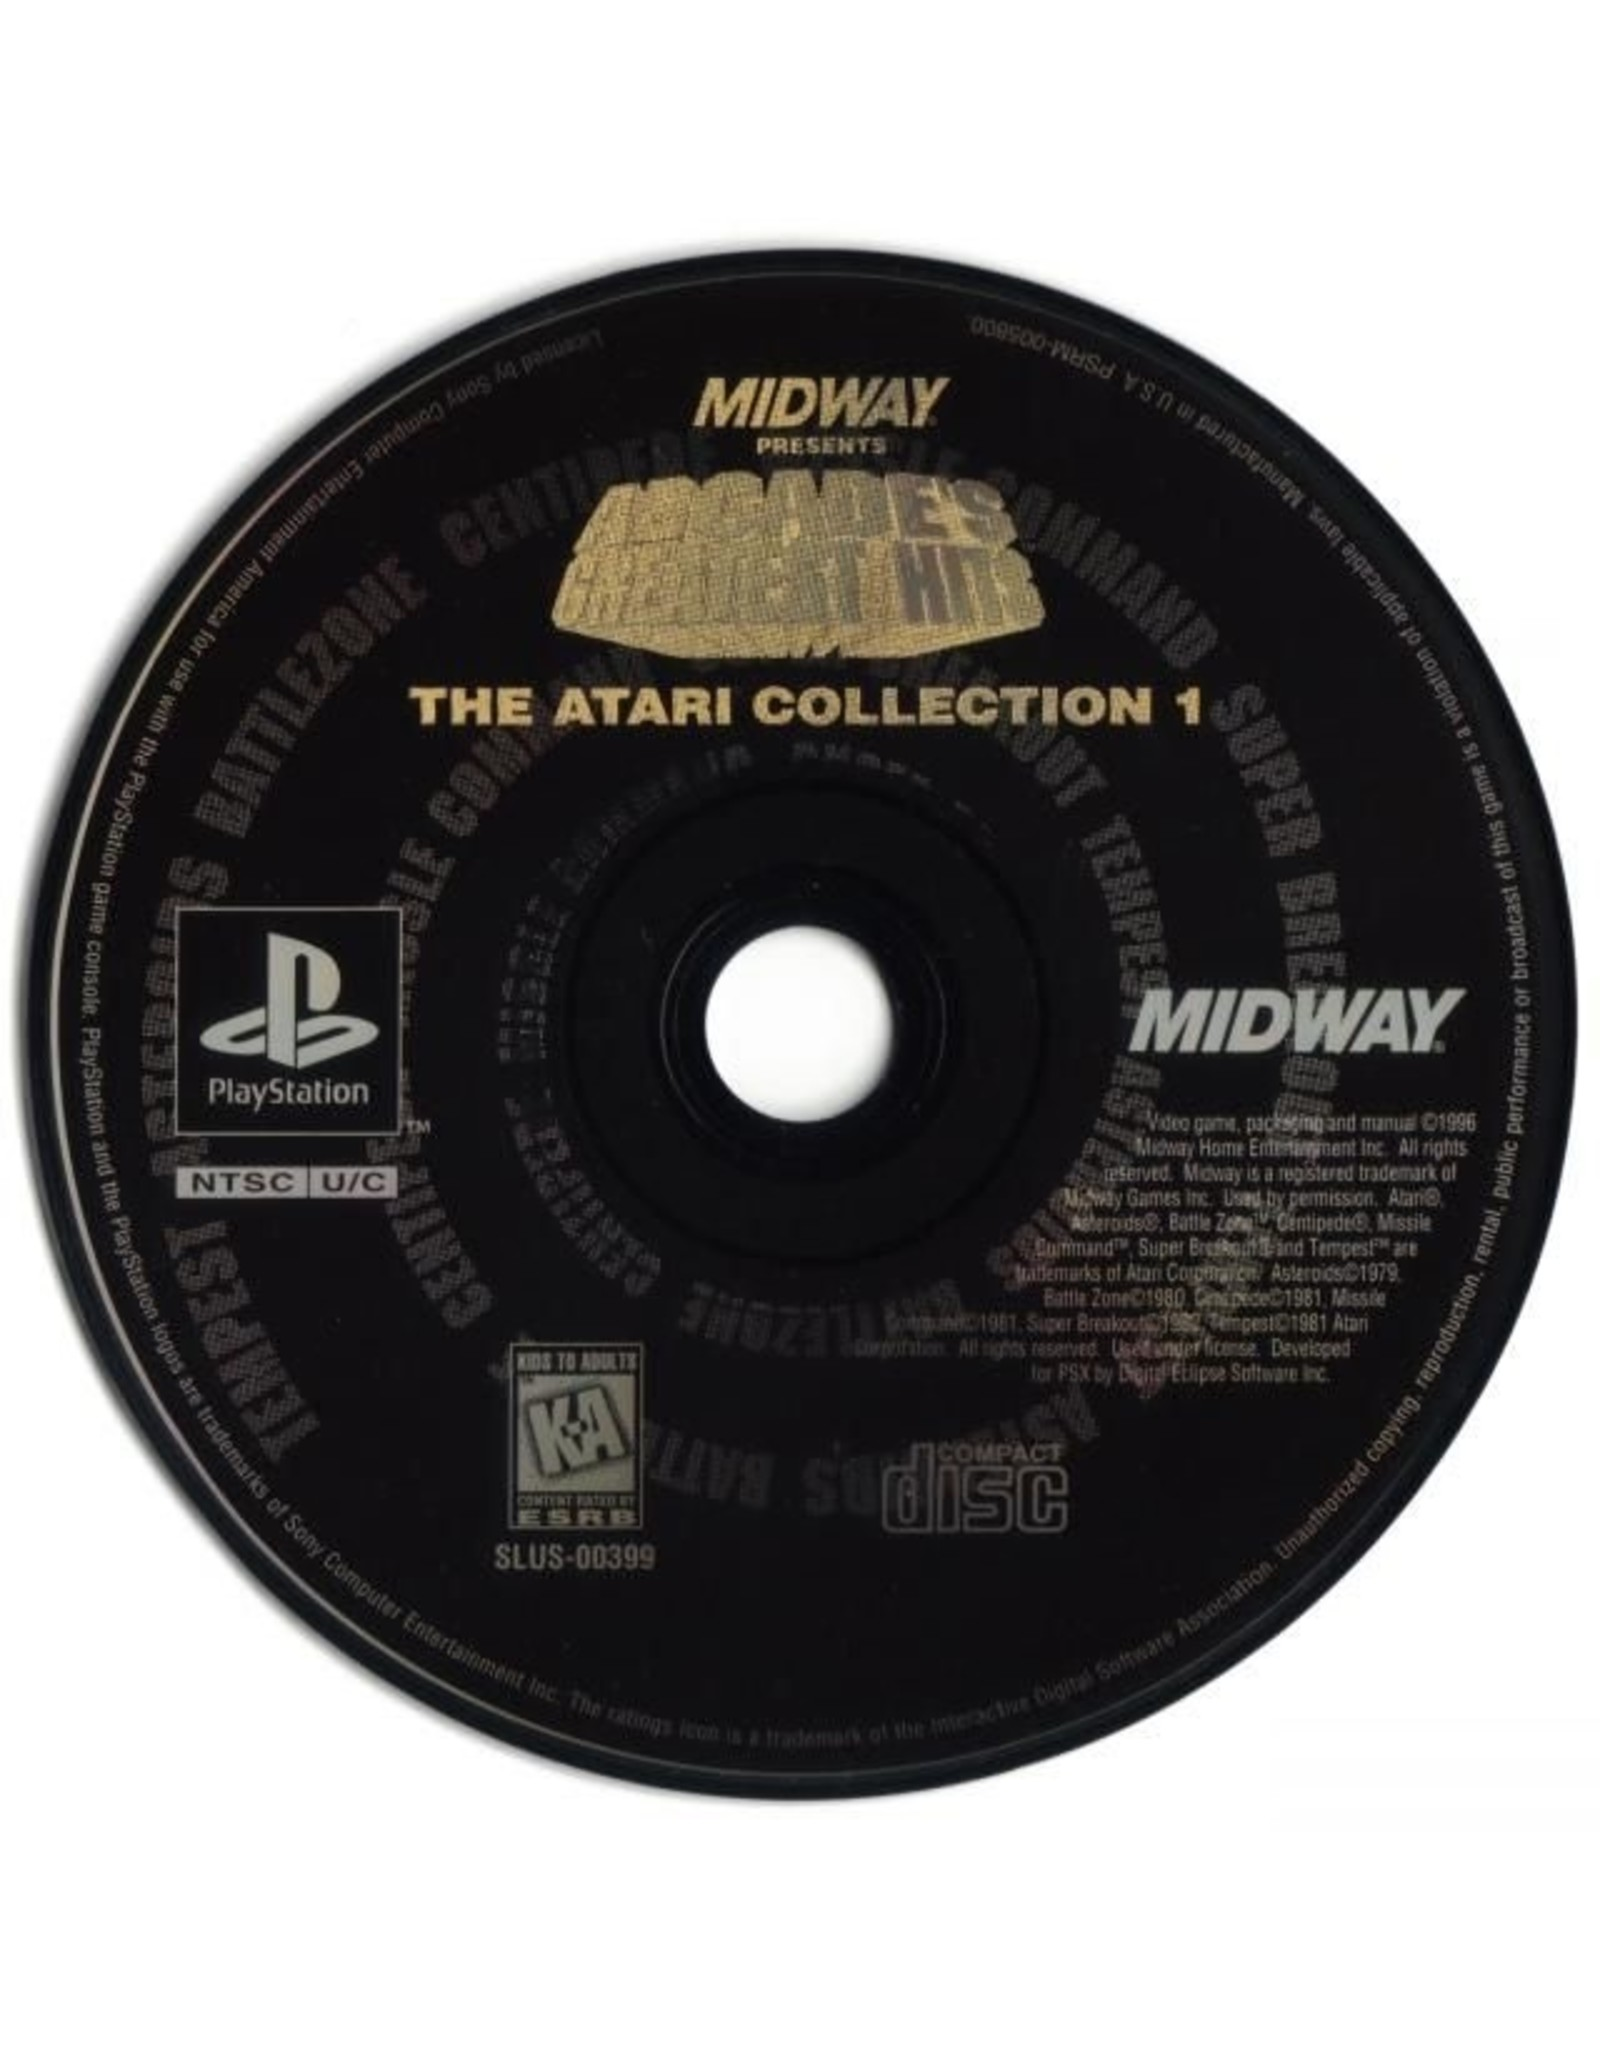 Arcade's Greatest Hits Atari Collection 1 (PSX)